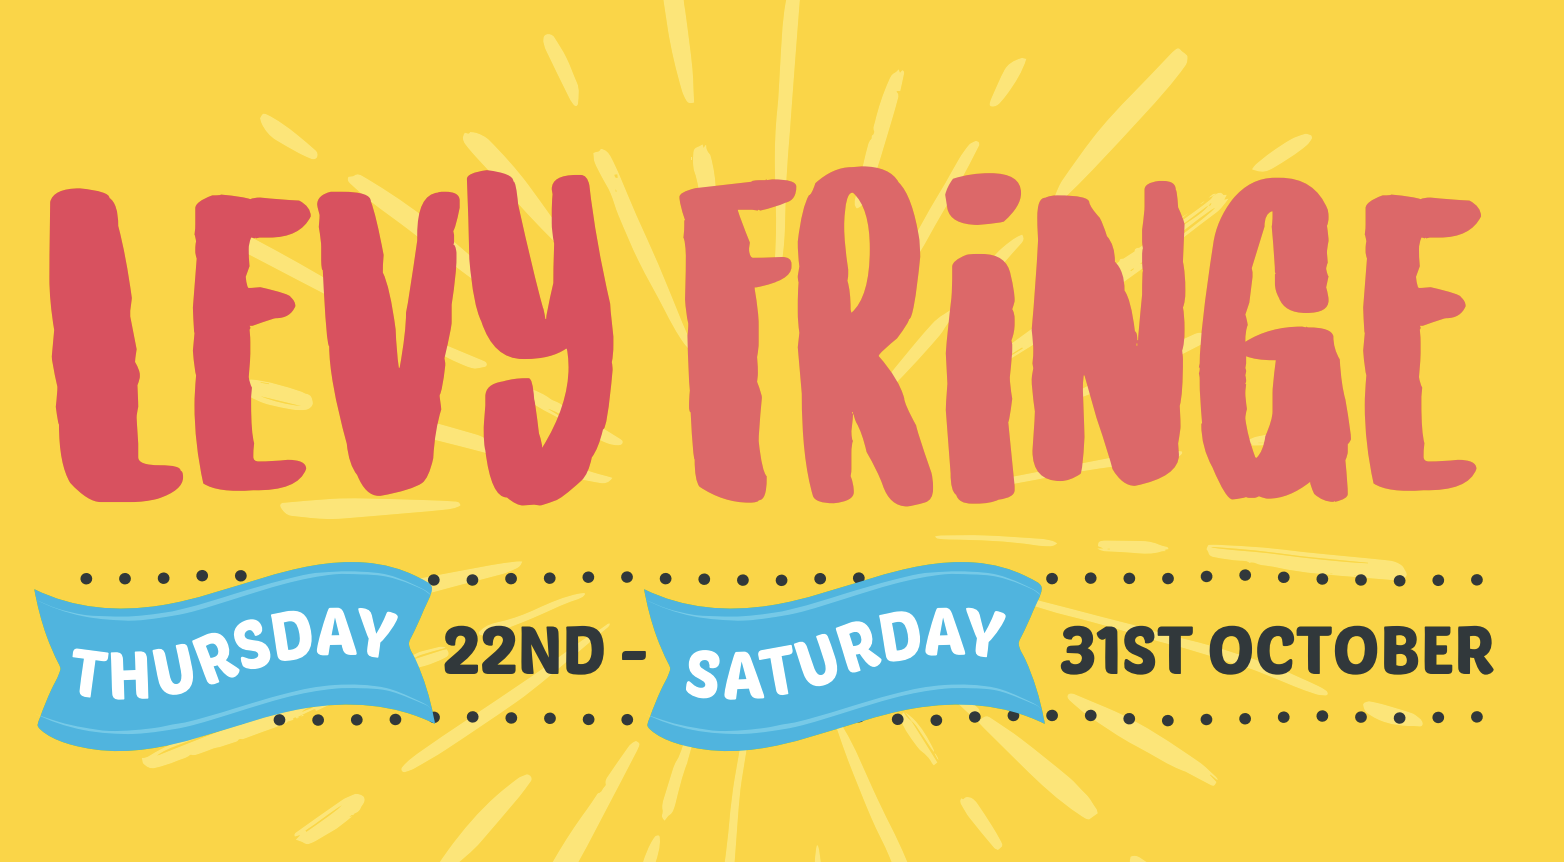 The full lineup for Levy Fringe Fest has been confirmed – with music, theatre and exhibitions, The Manc